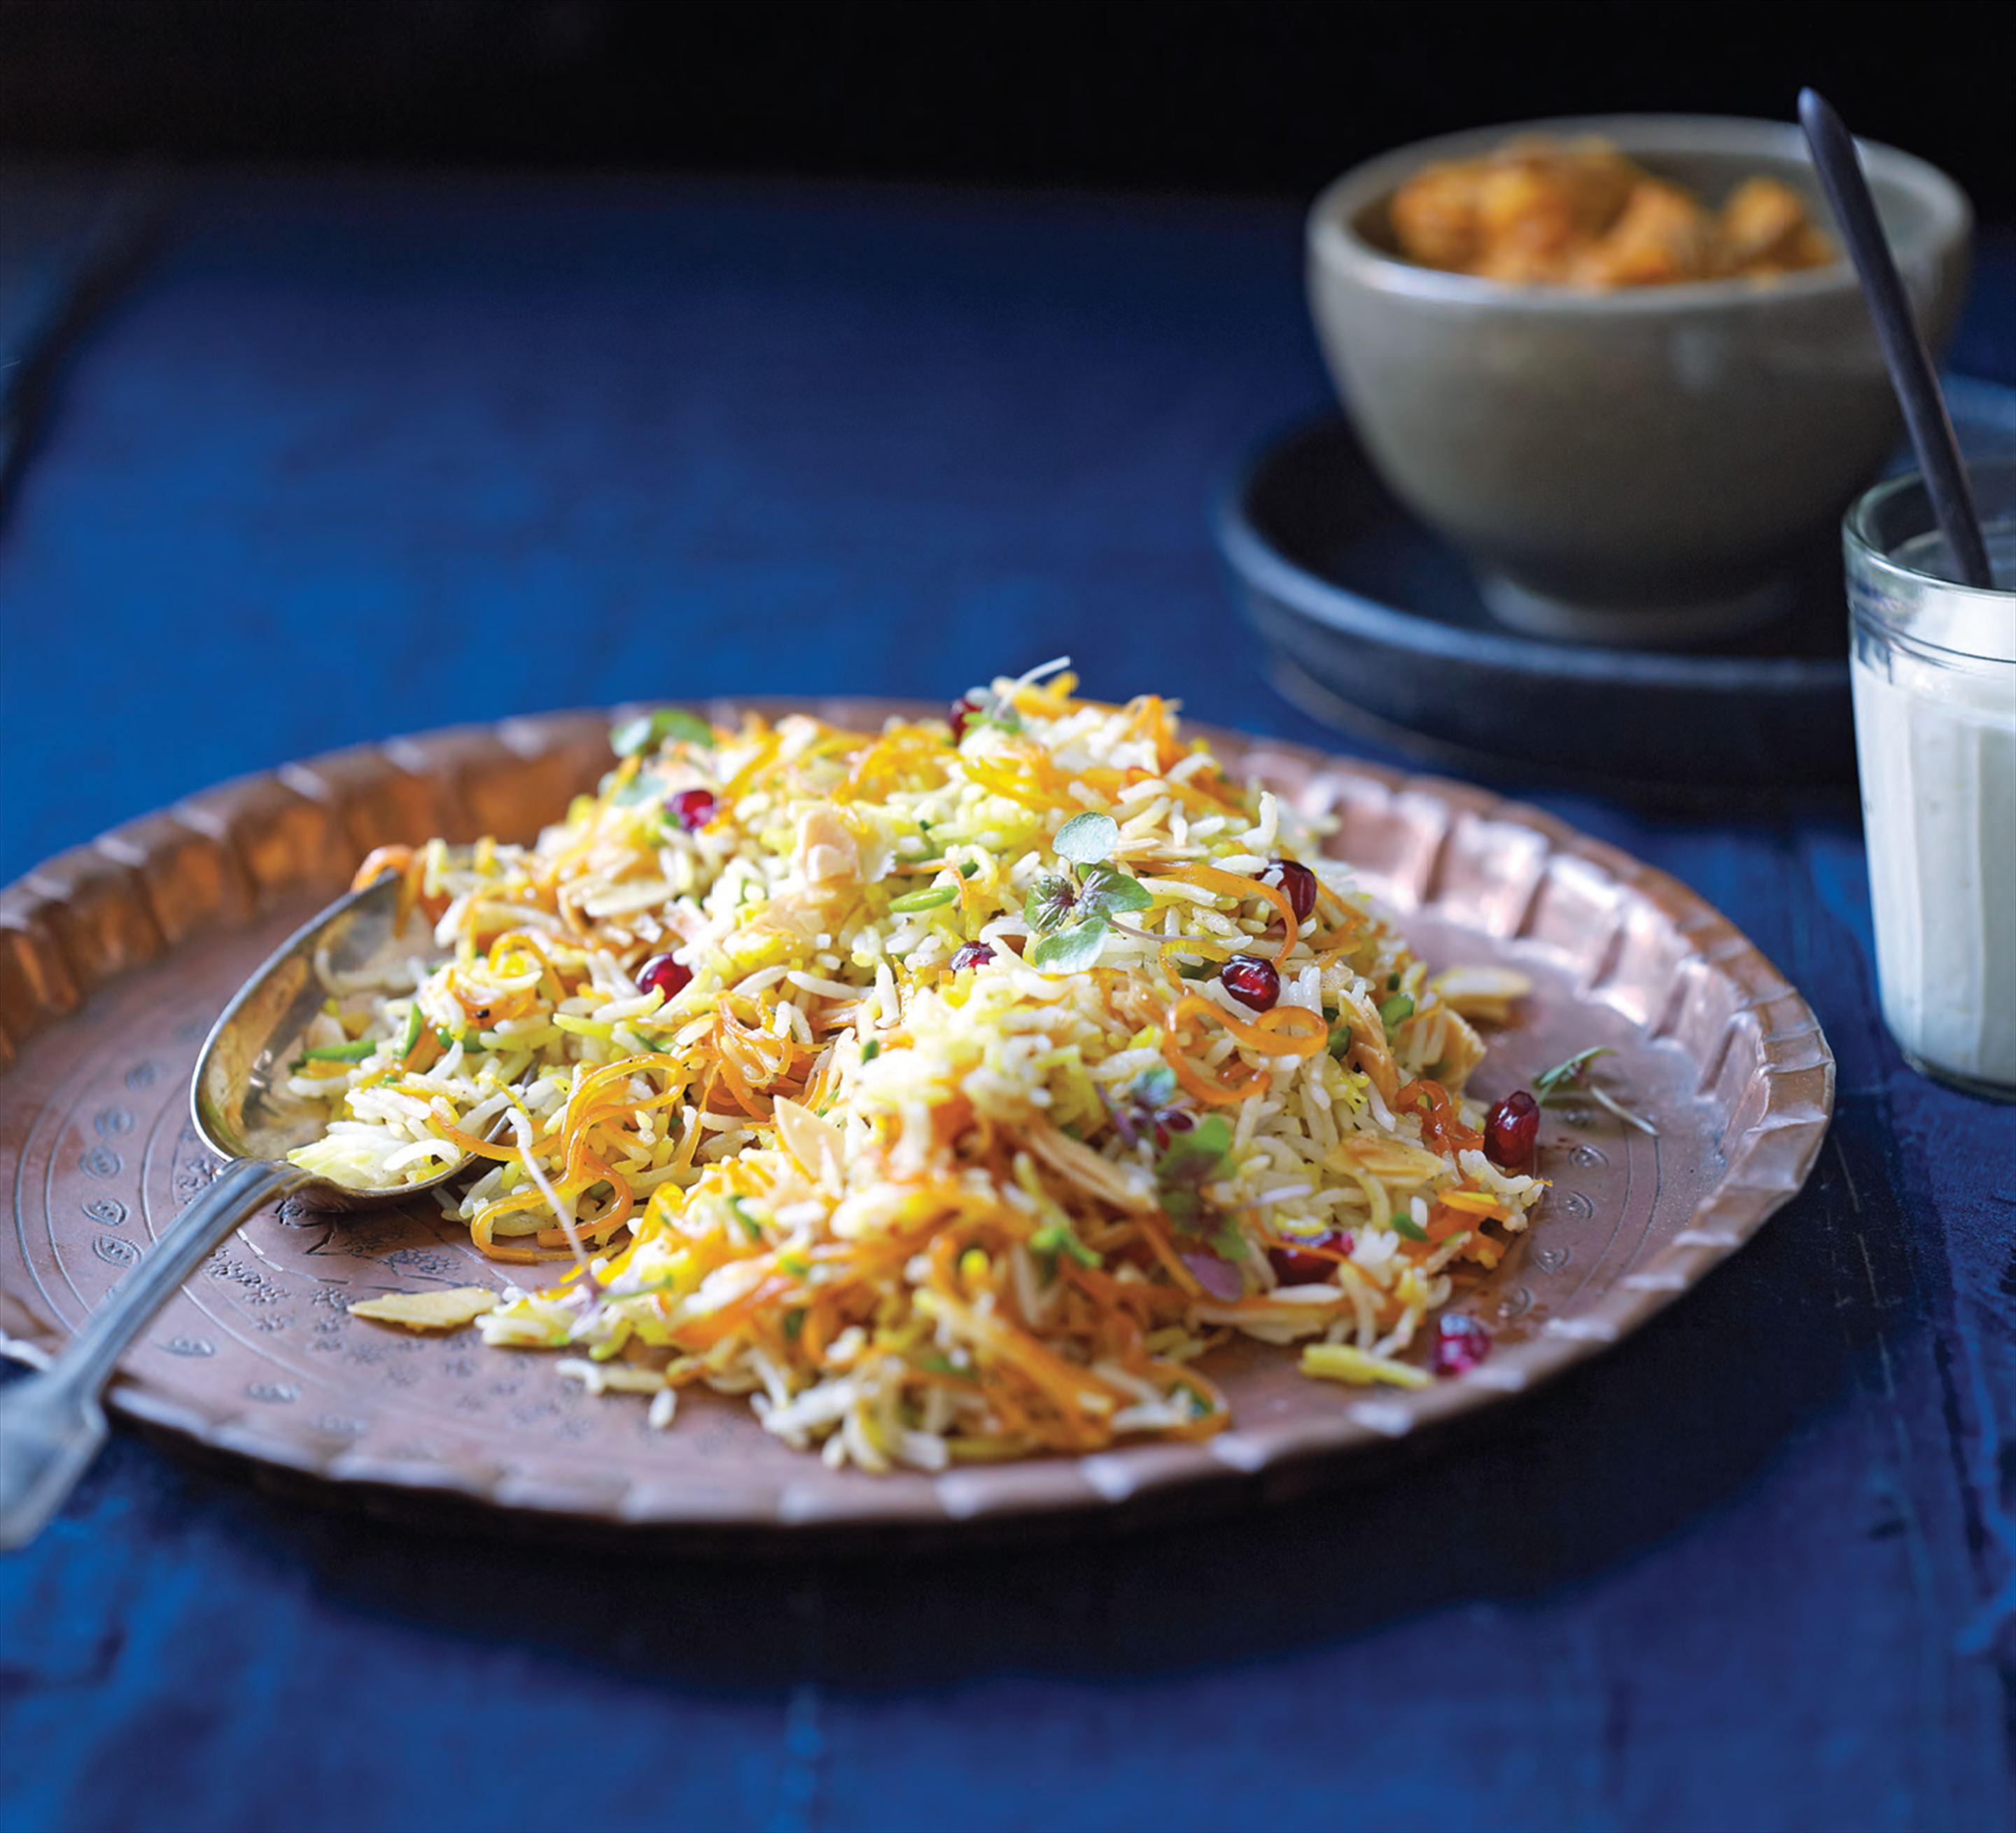 Sweet rice with saffron, nuts and orange zest